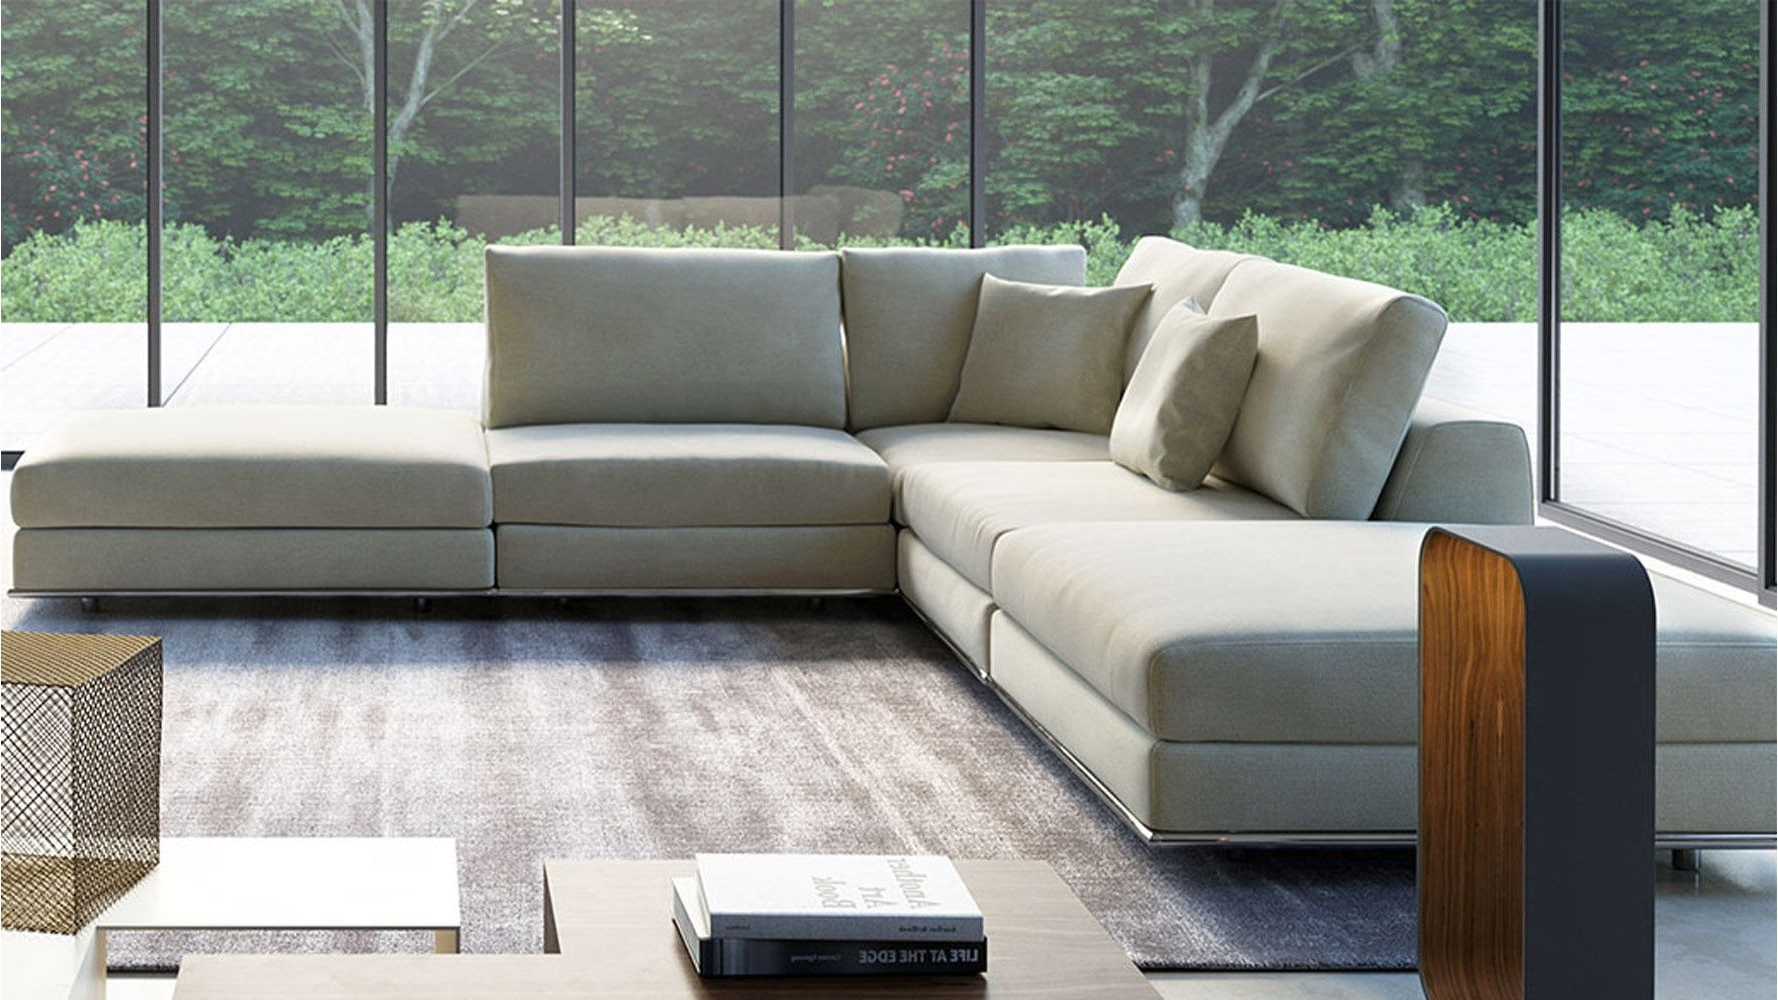 2019 Armless Sectional Sofas Throughout Cool Armless Sectional Sofa , Unique Armless Sectional Sofa 22 On (View 1 of 20)